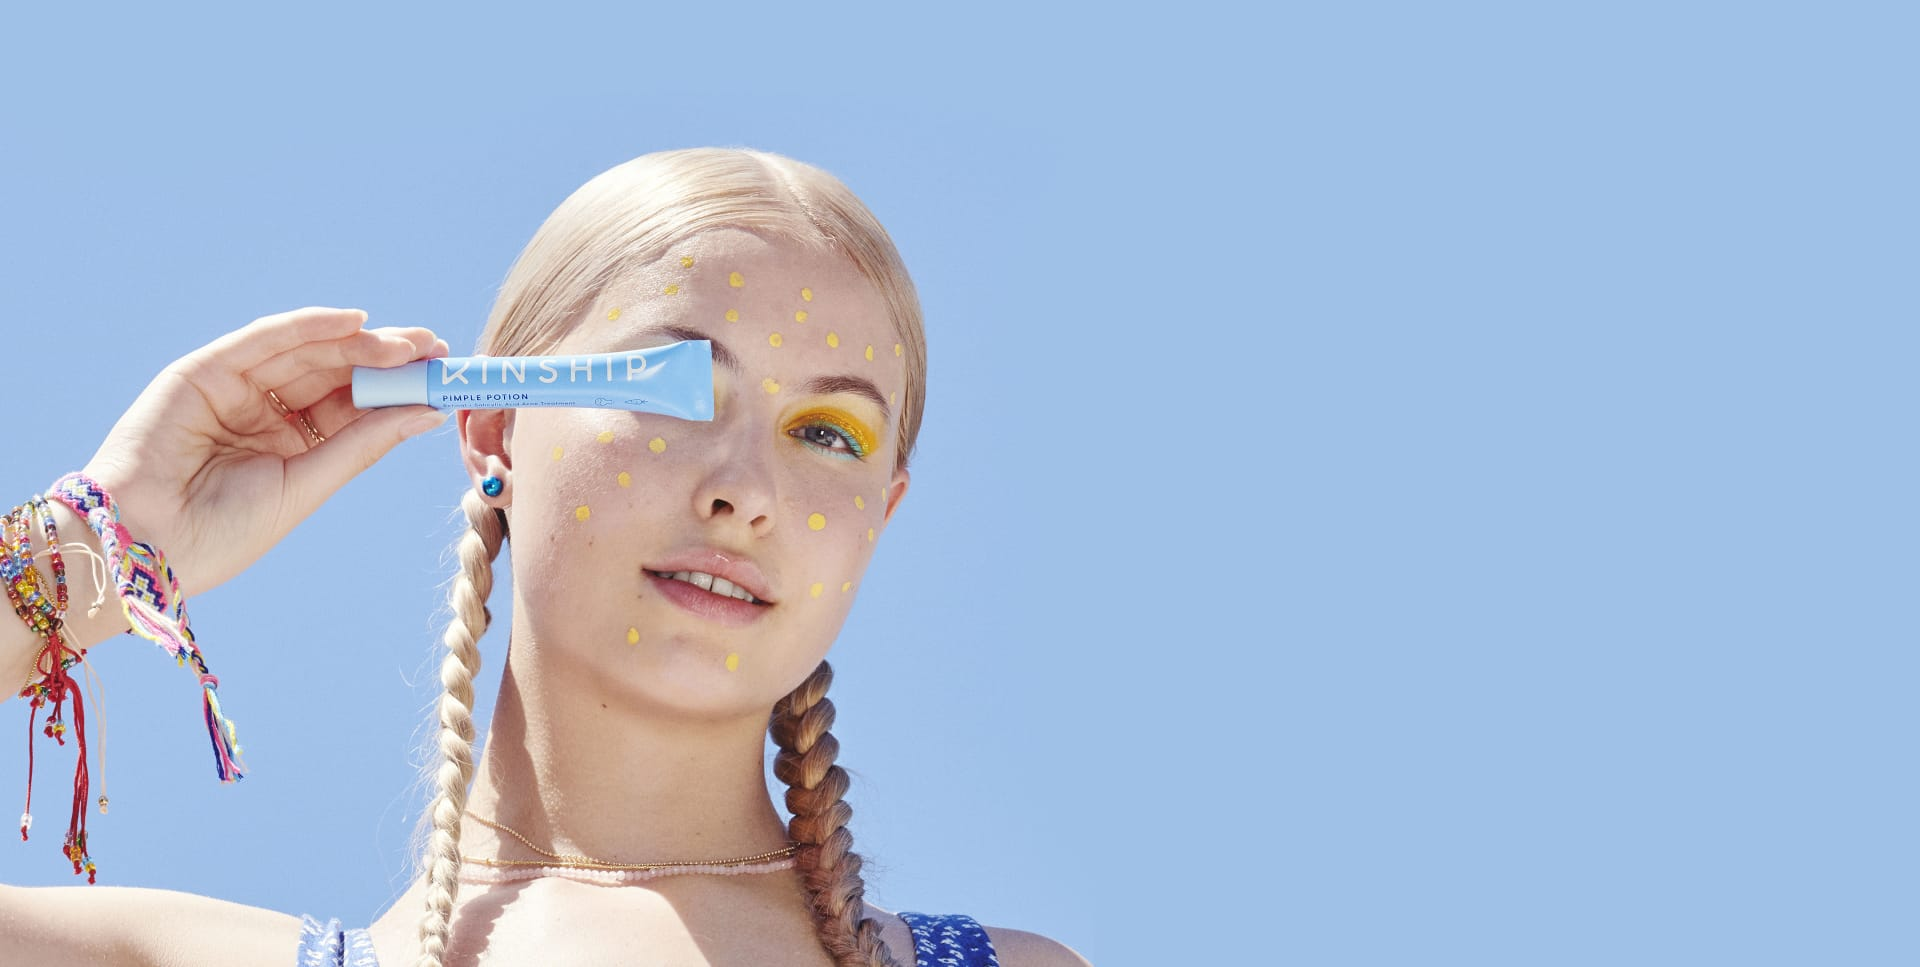 A young woman holds the Pimple Potion tube with the yellow acne treatment dotted on her face | Kinship